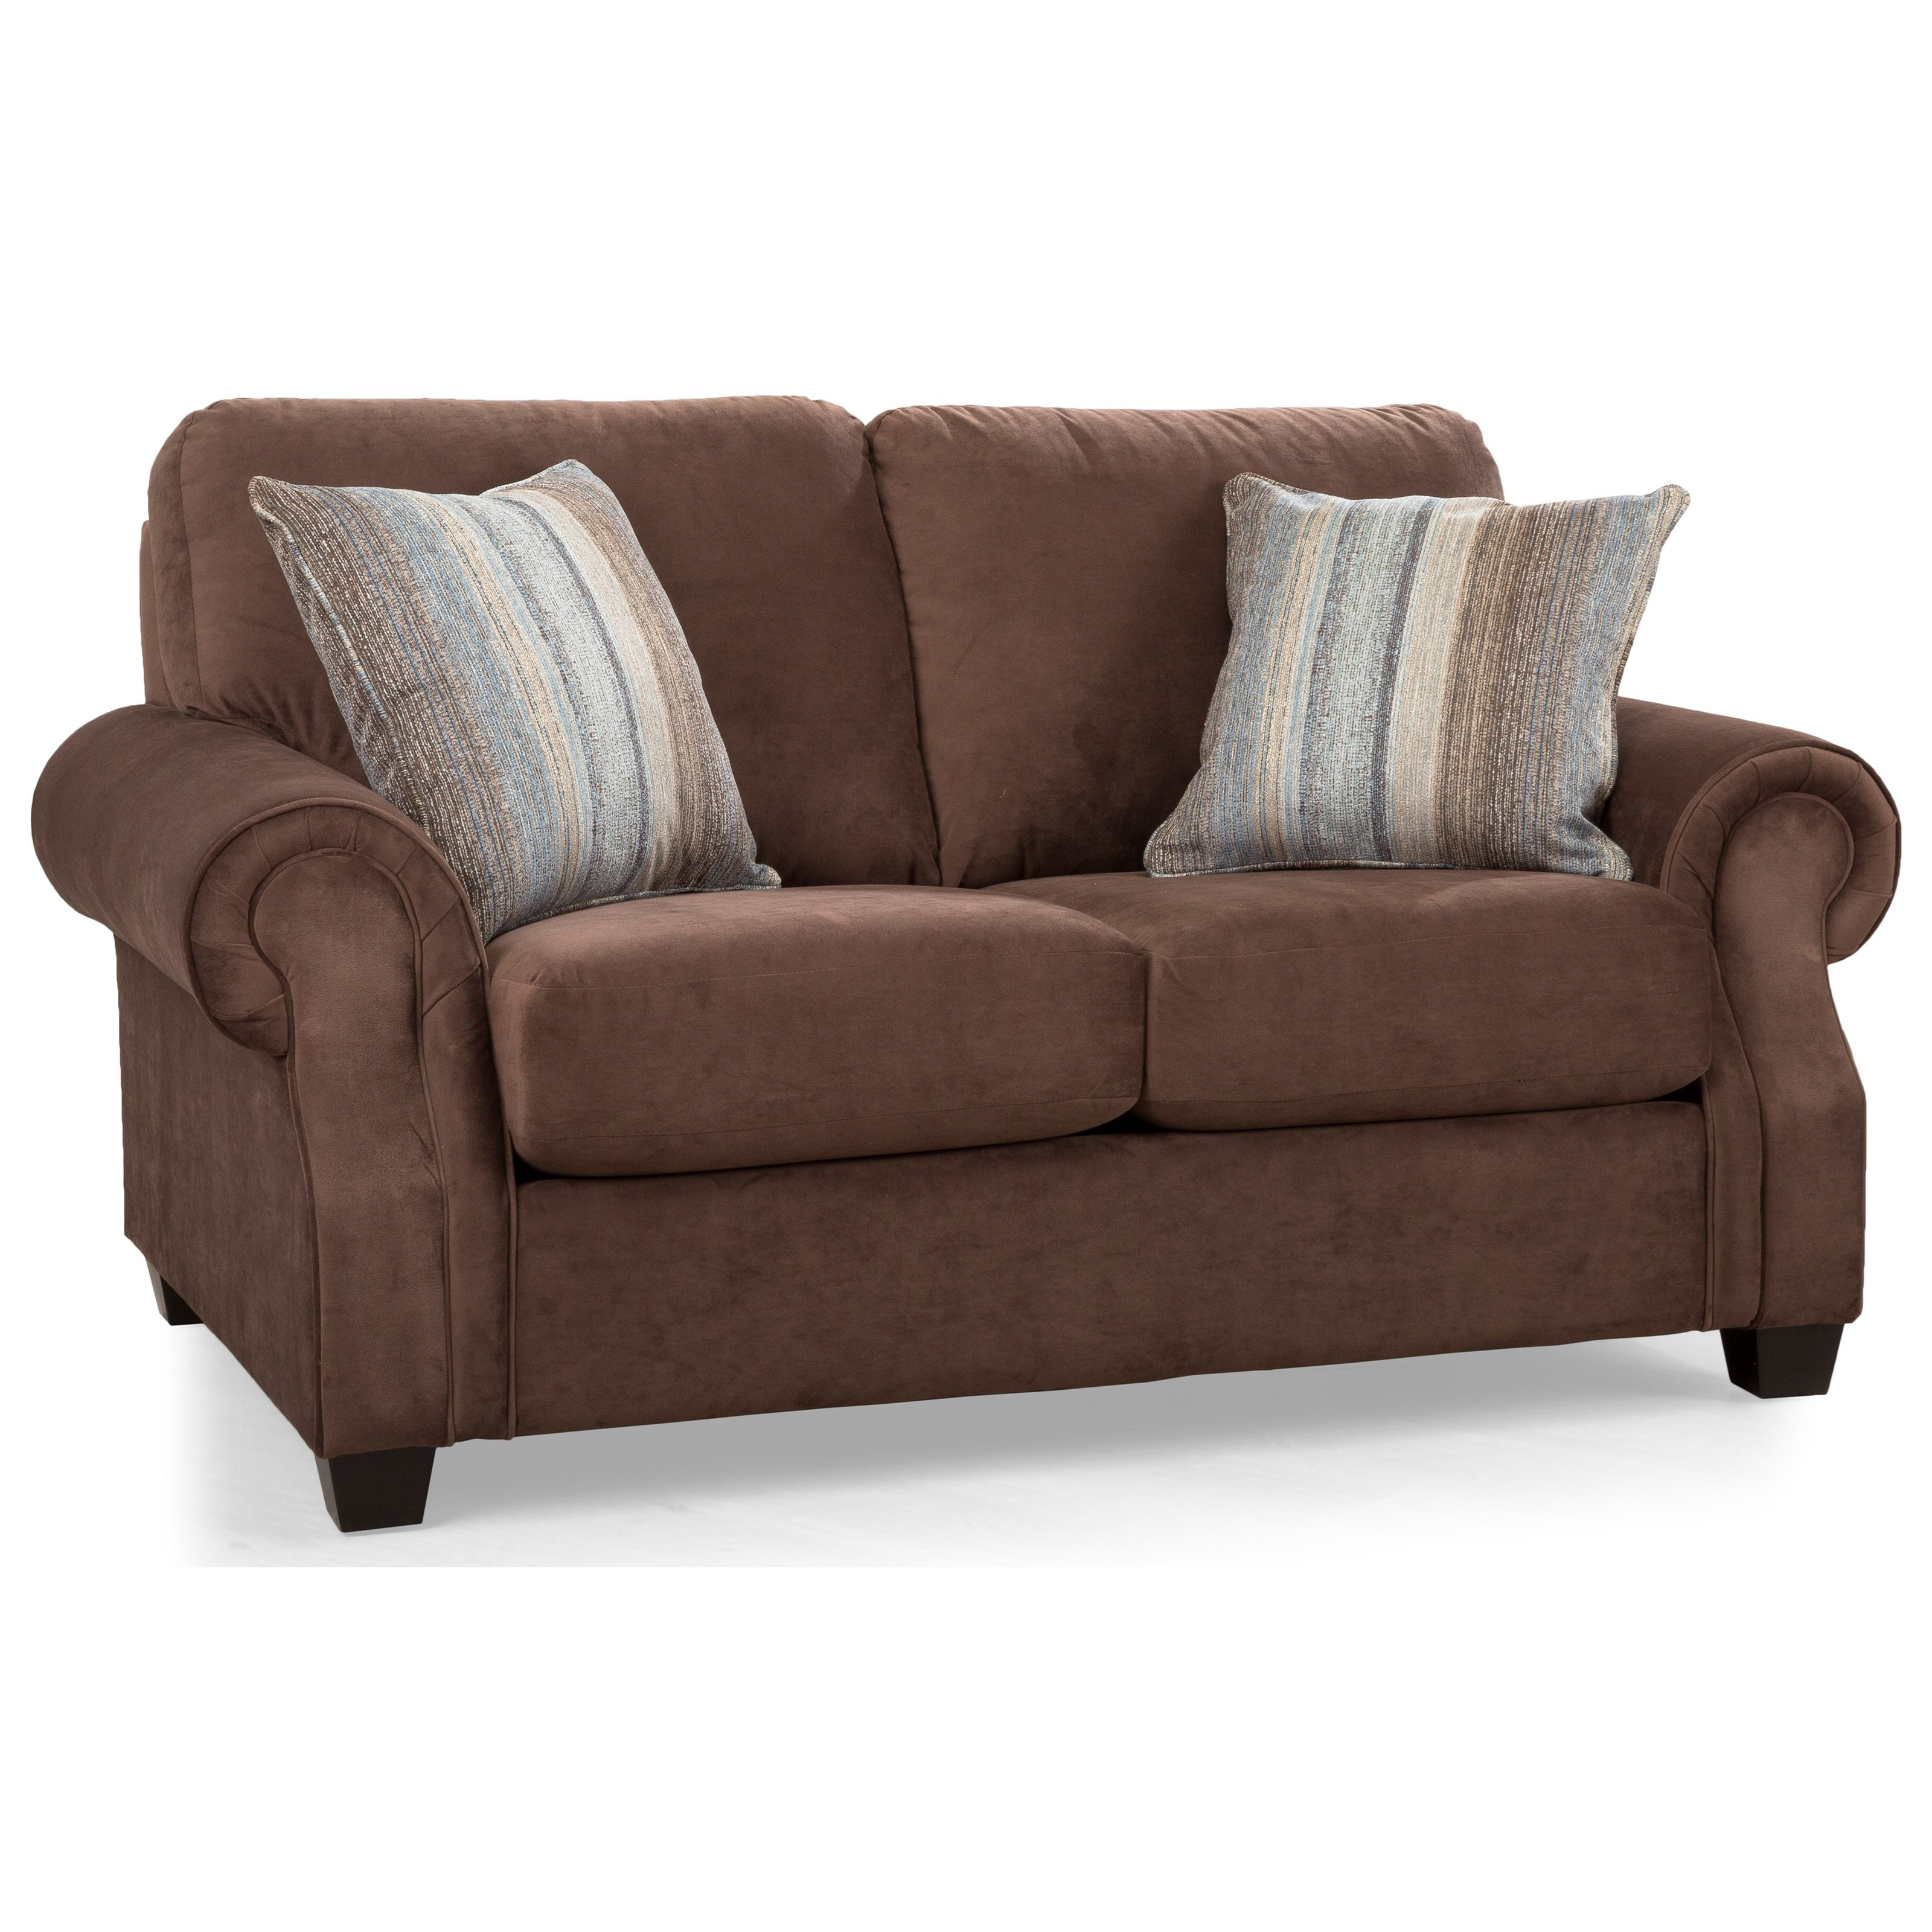 2279 Loveseat by Decor-Rest at Reid's Furniture